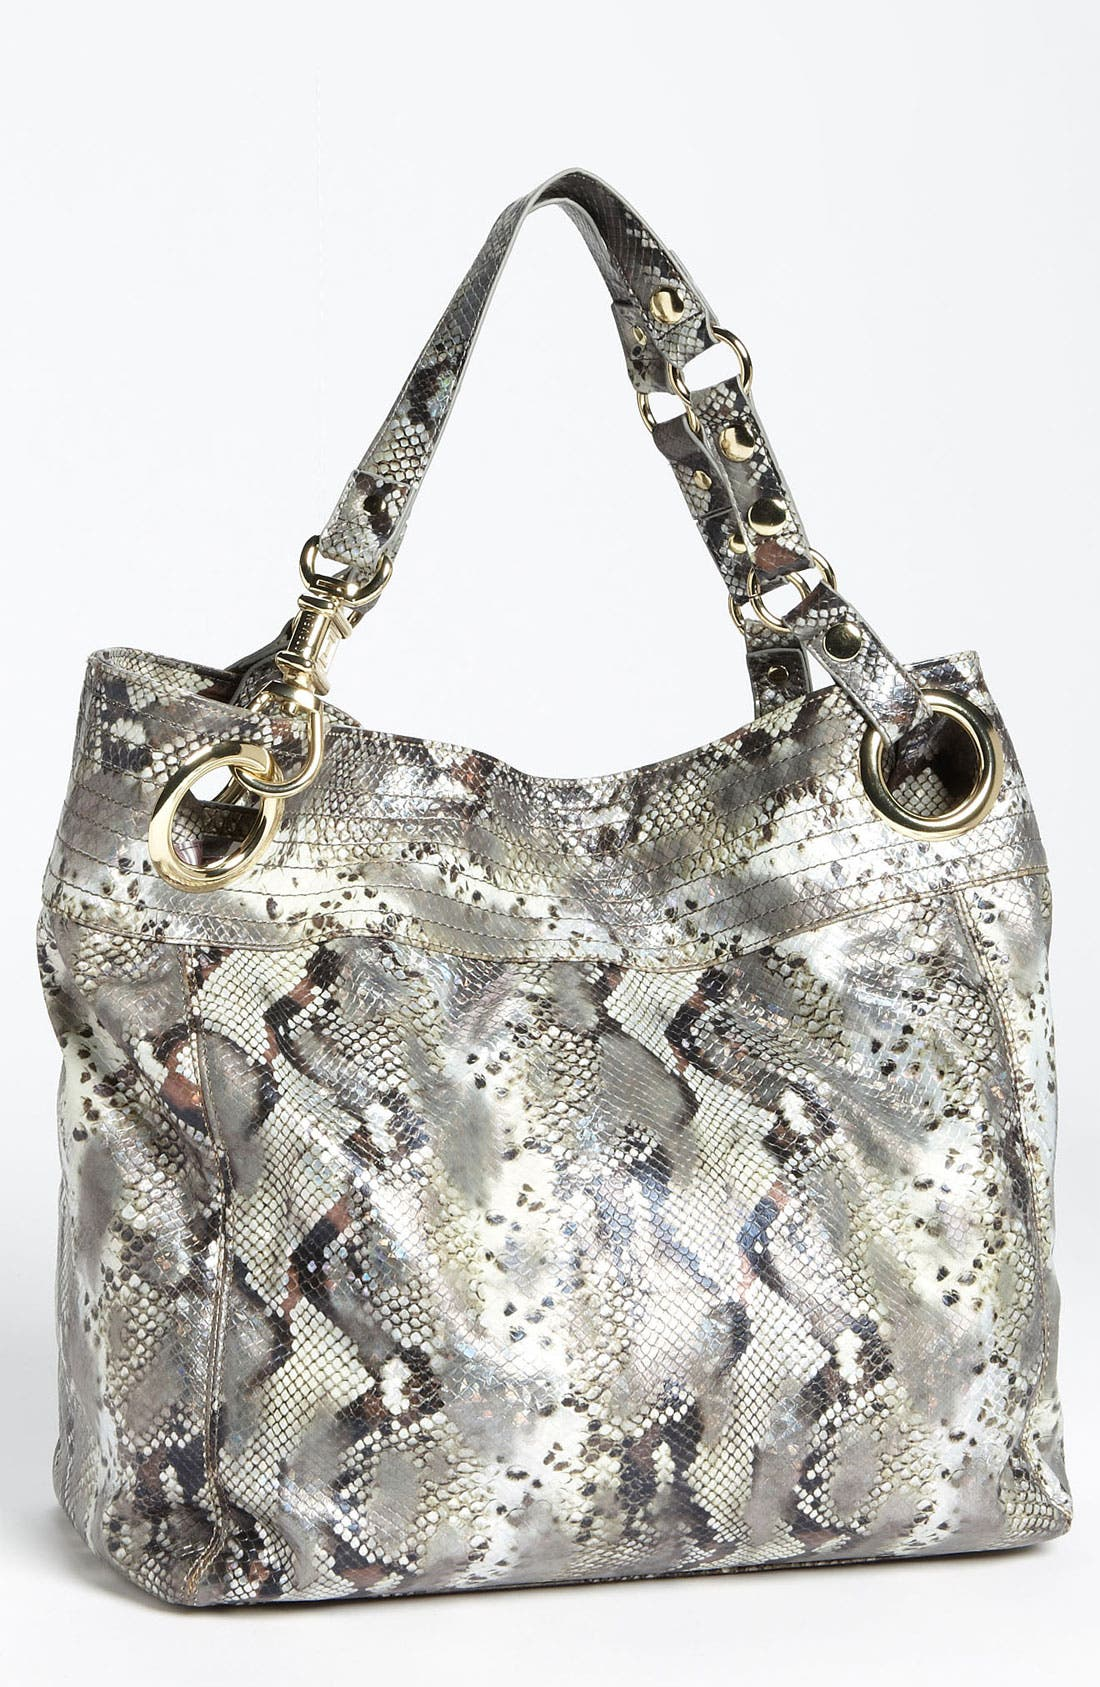 Alternate Image 1 Selected - Steven by Steve Madden 'Candy Coated' Snake Embossed Tote